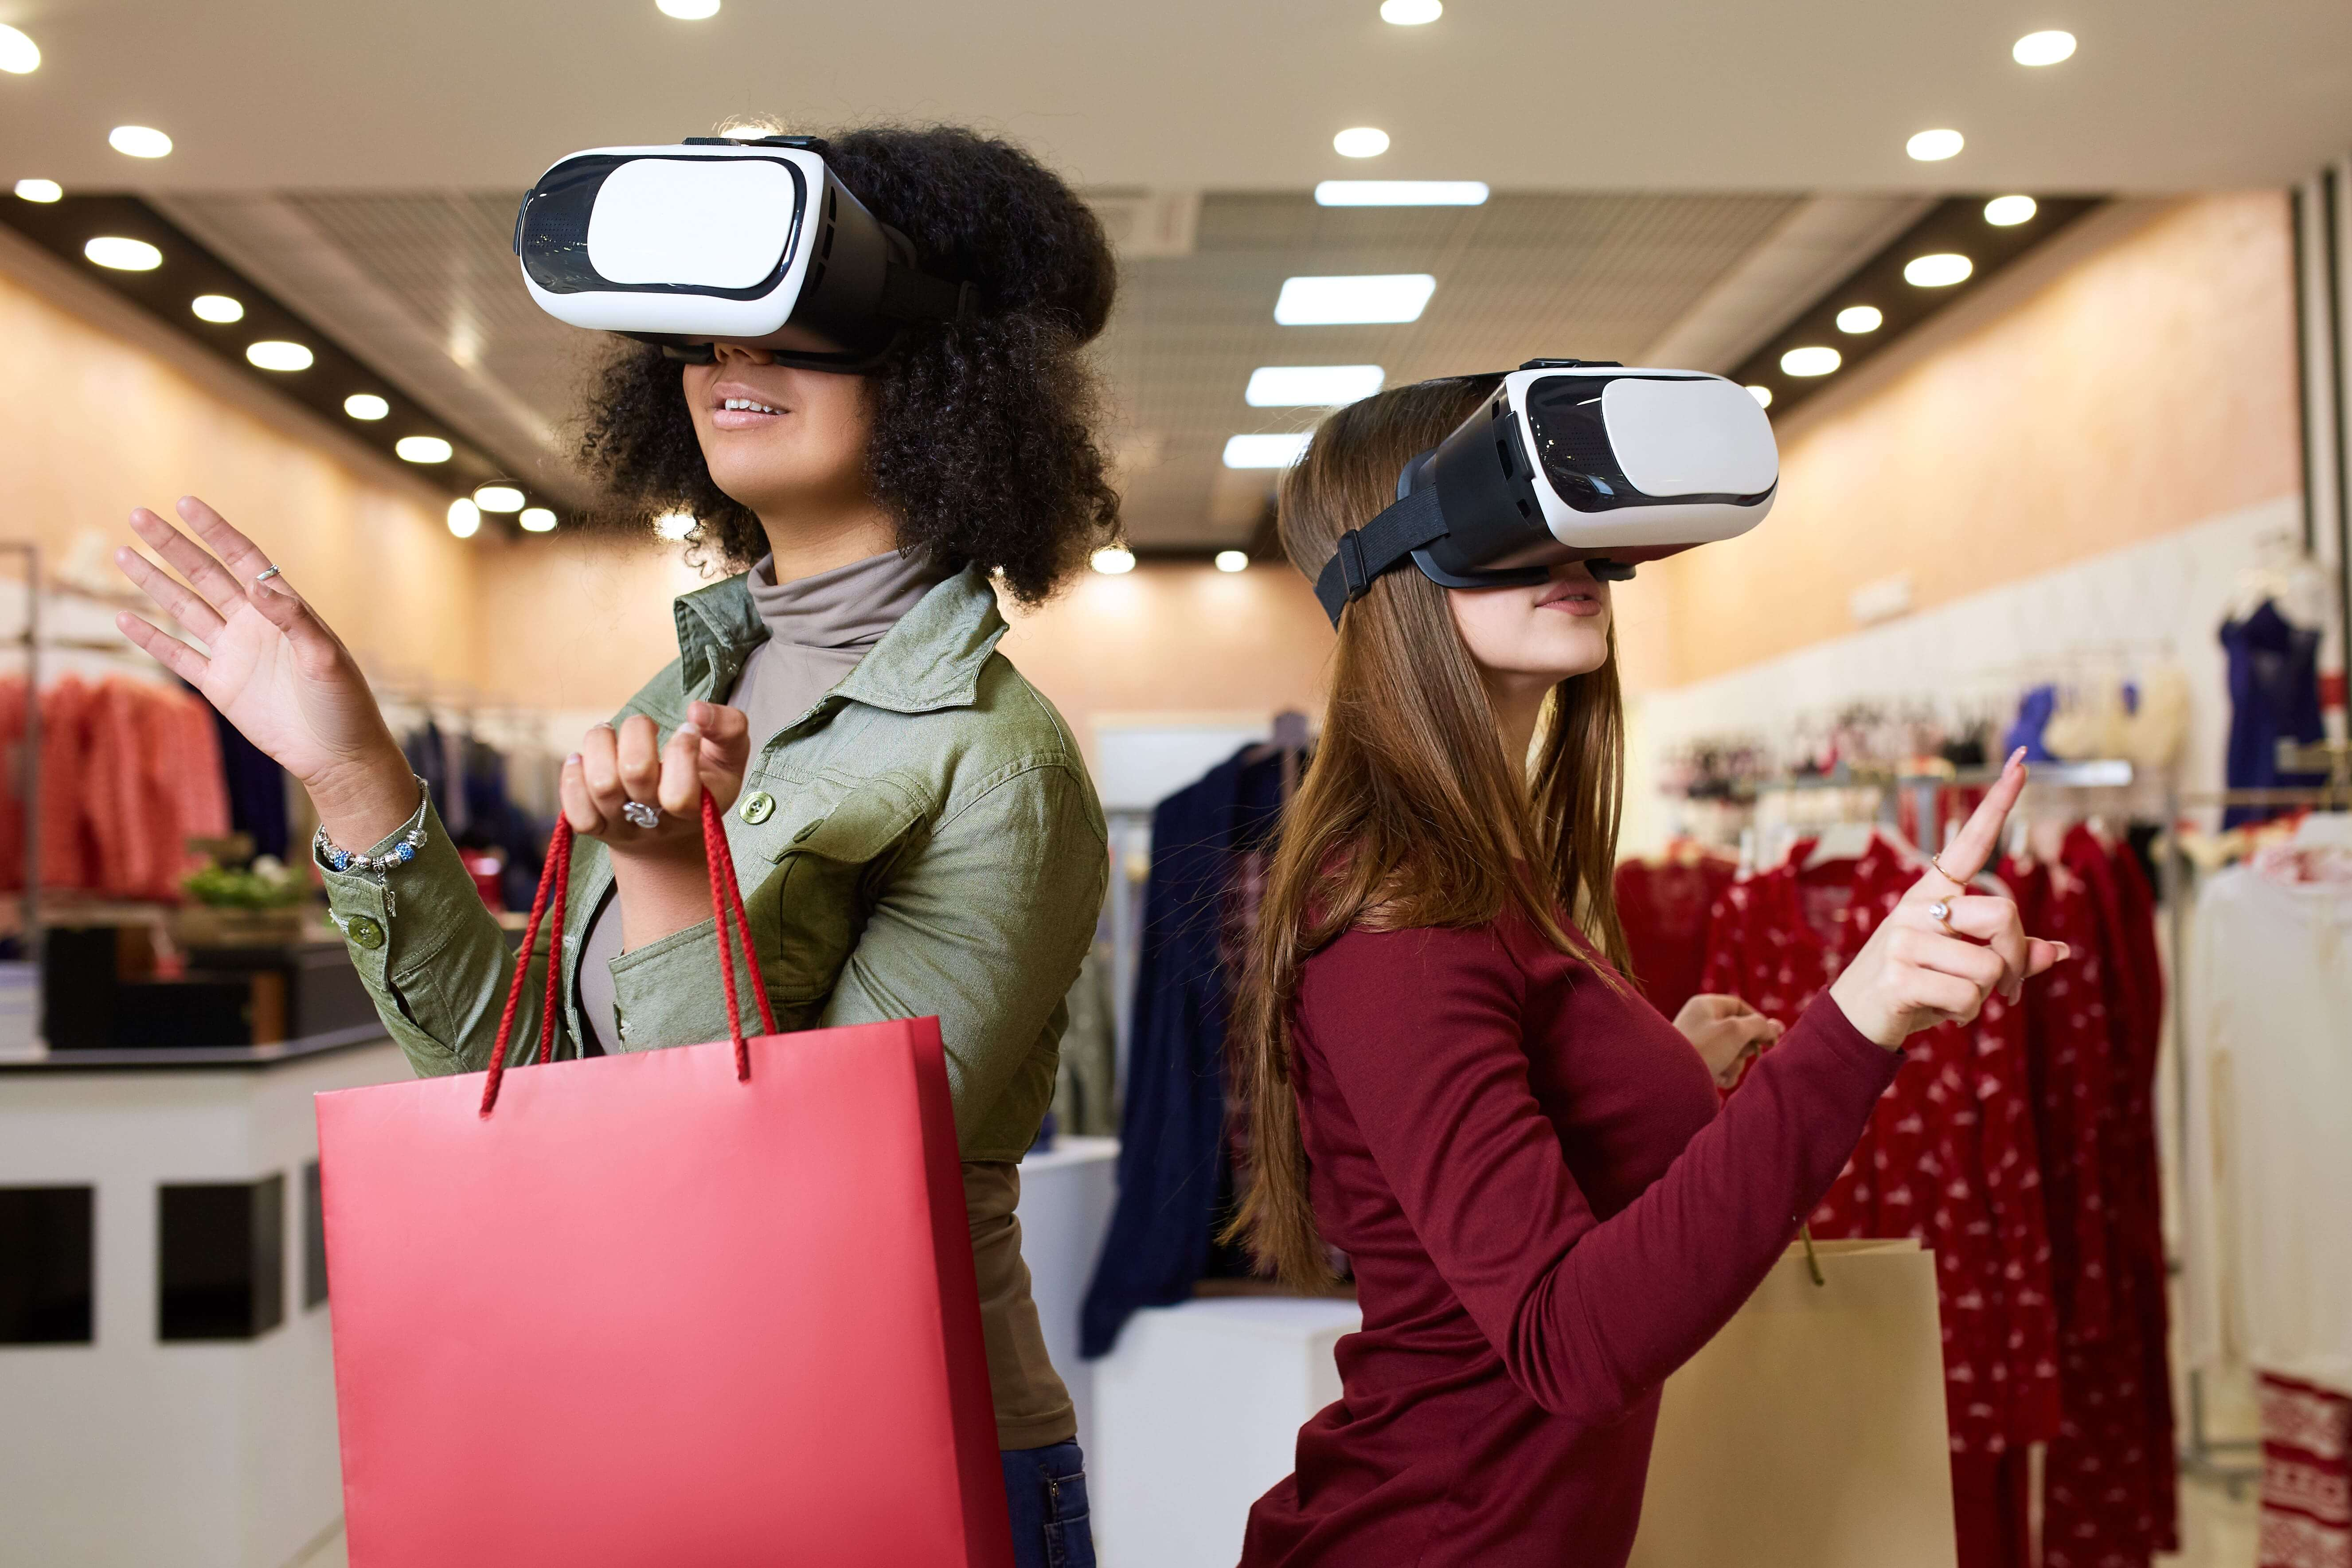 How Virtual Reality Technology Can Give Customers In-Store Experience at Home